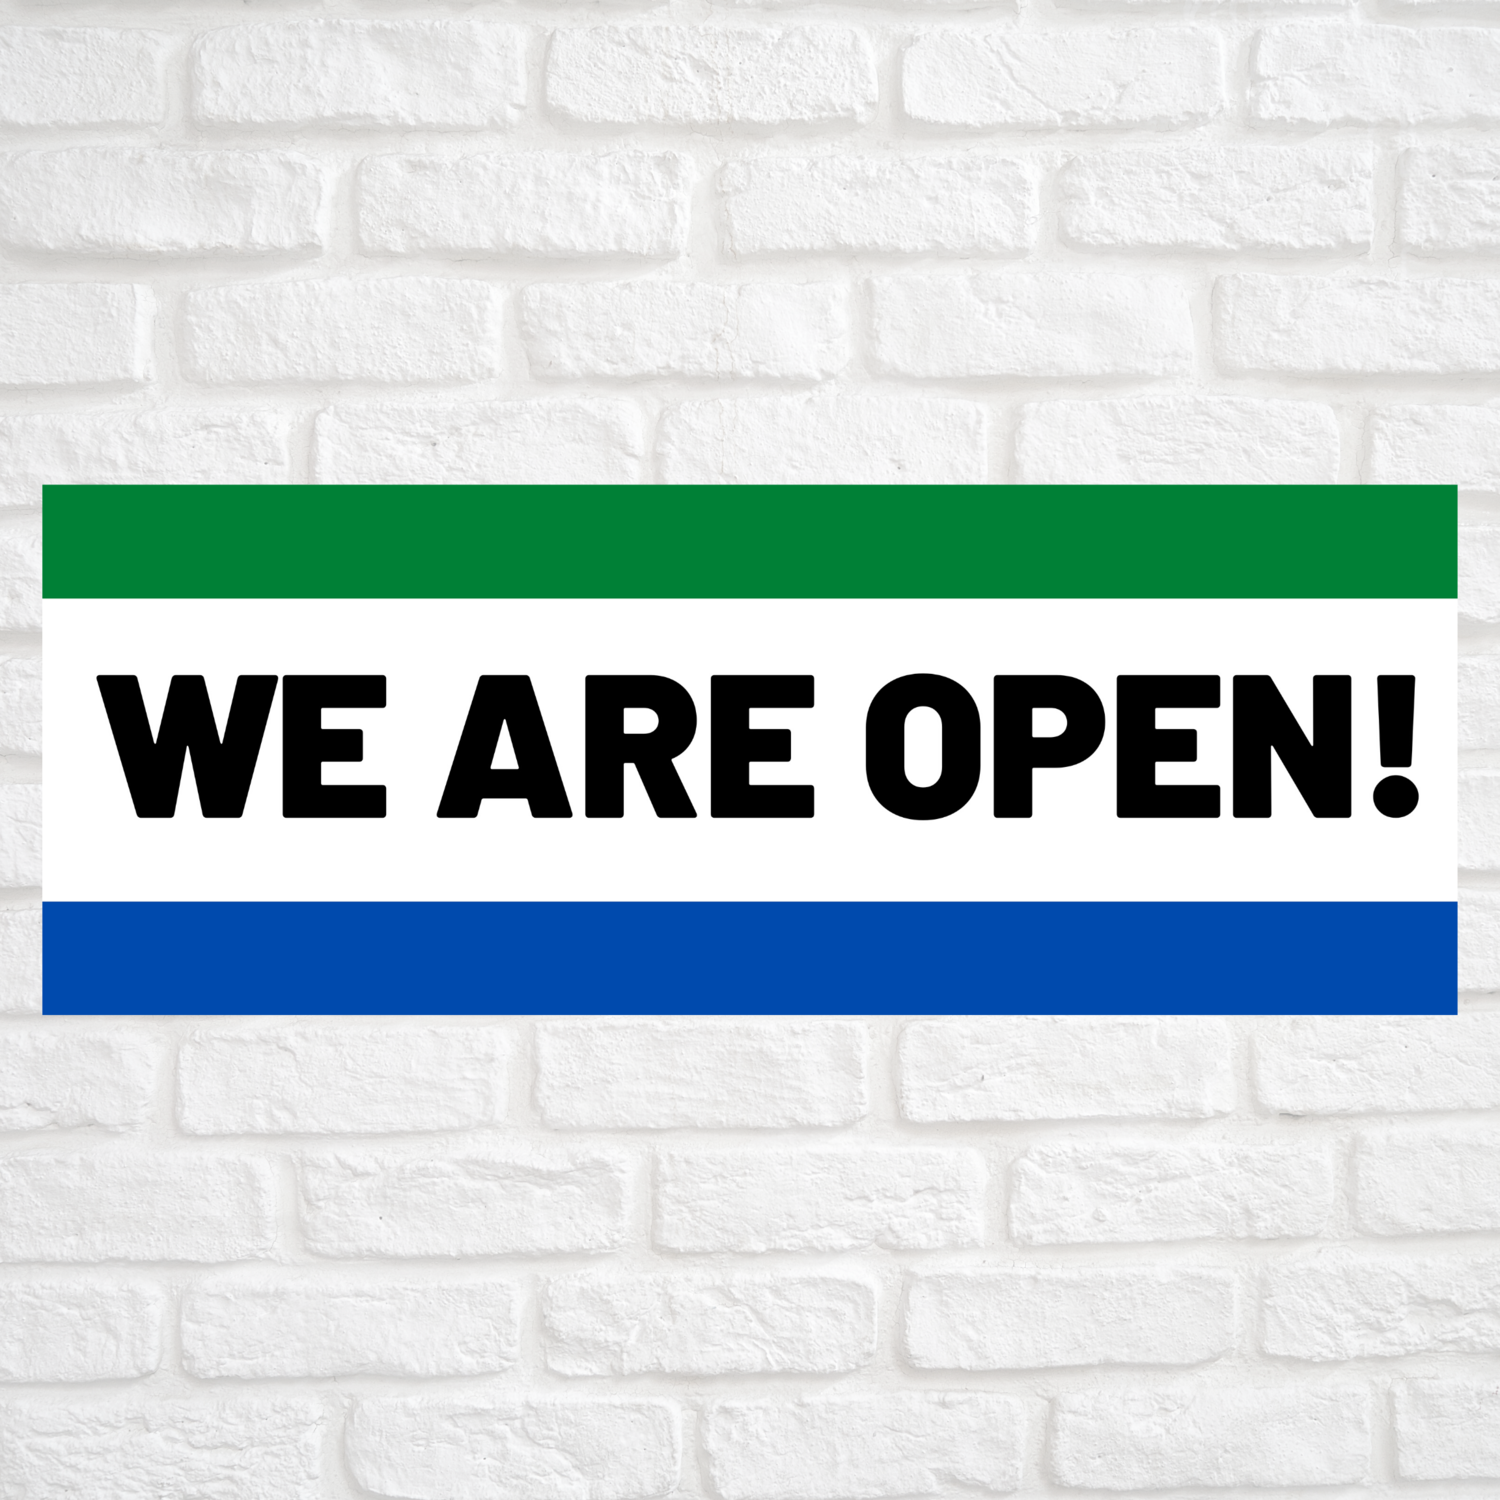 We Are Open! Green/Blue